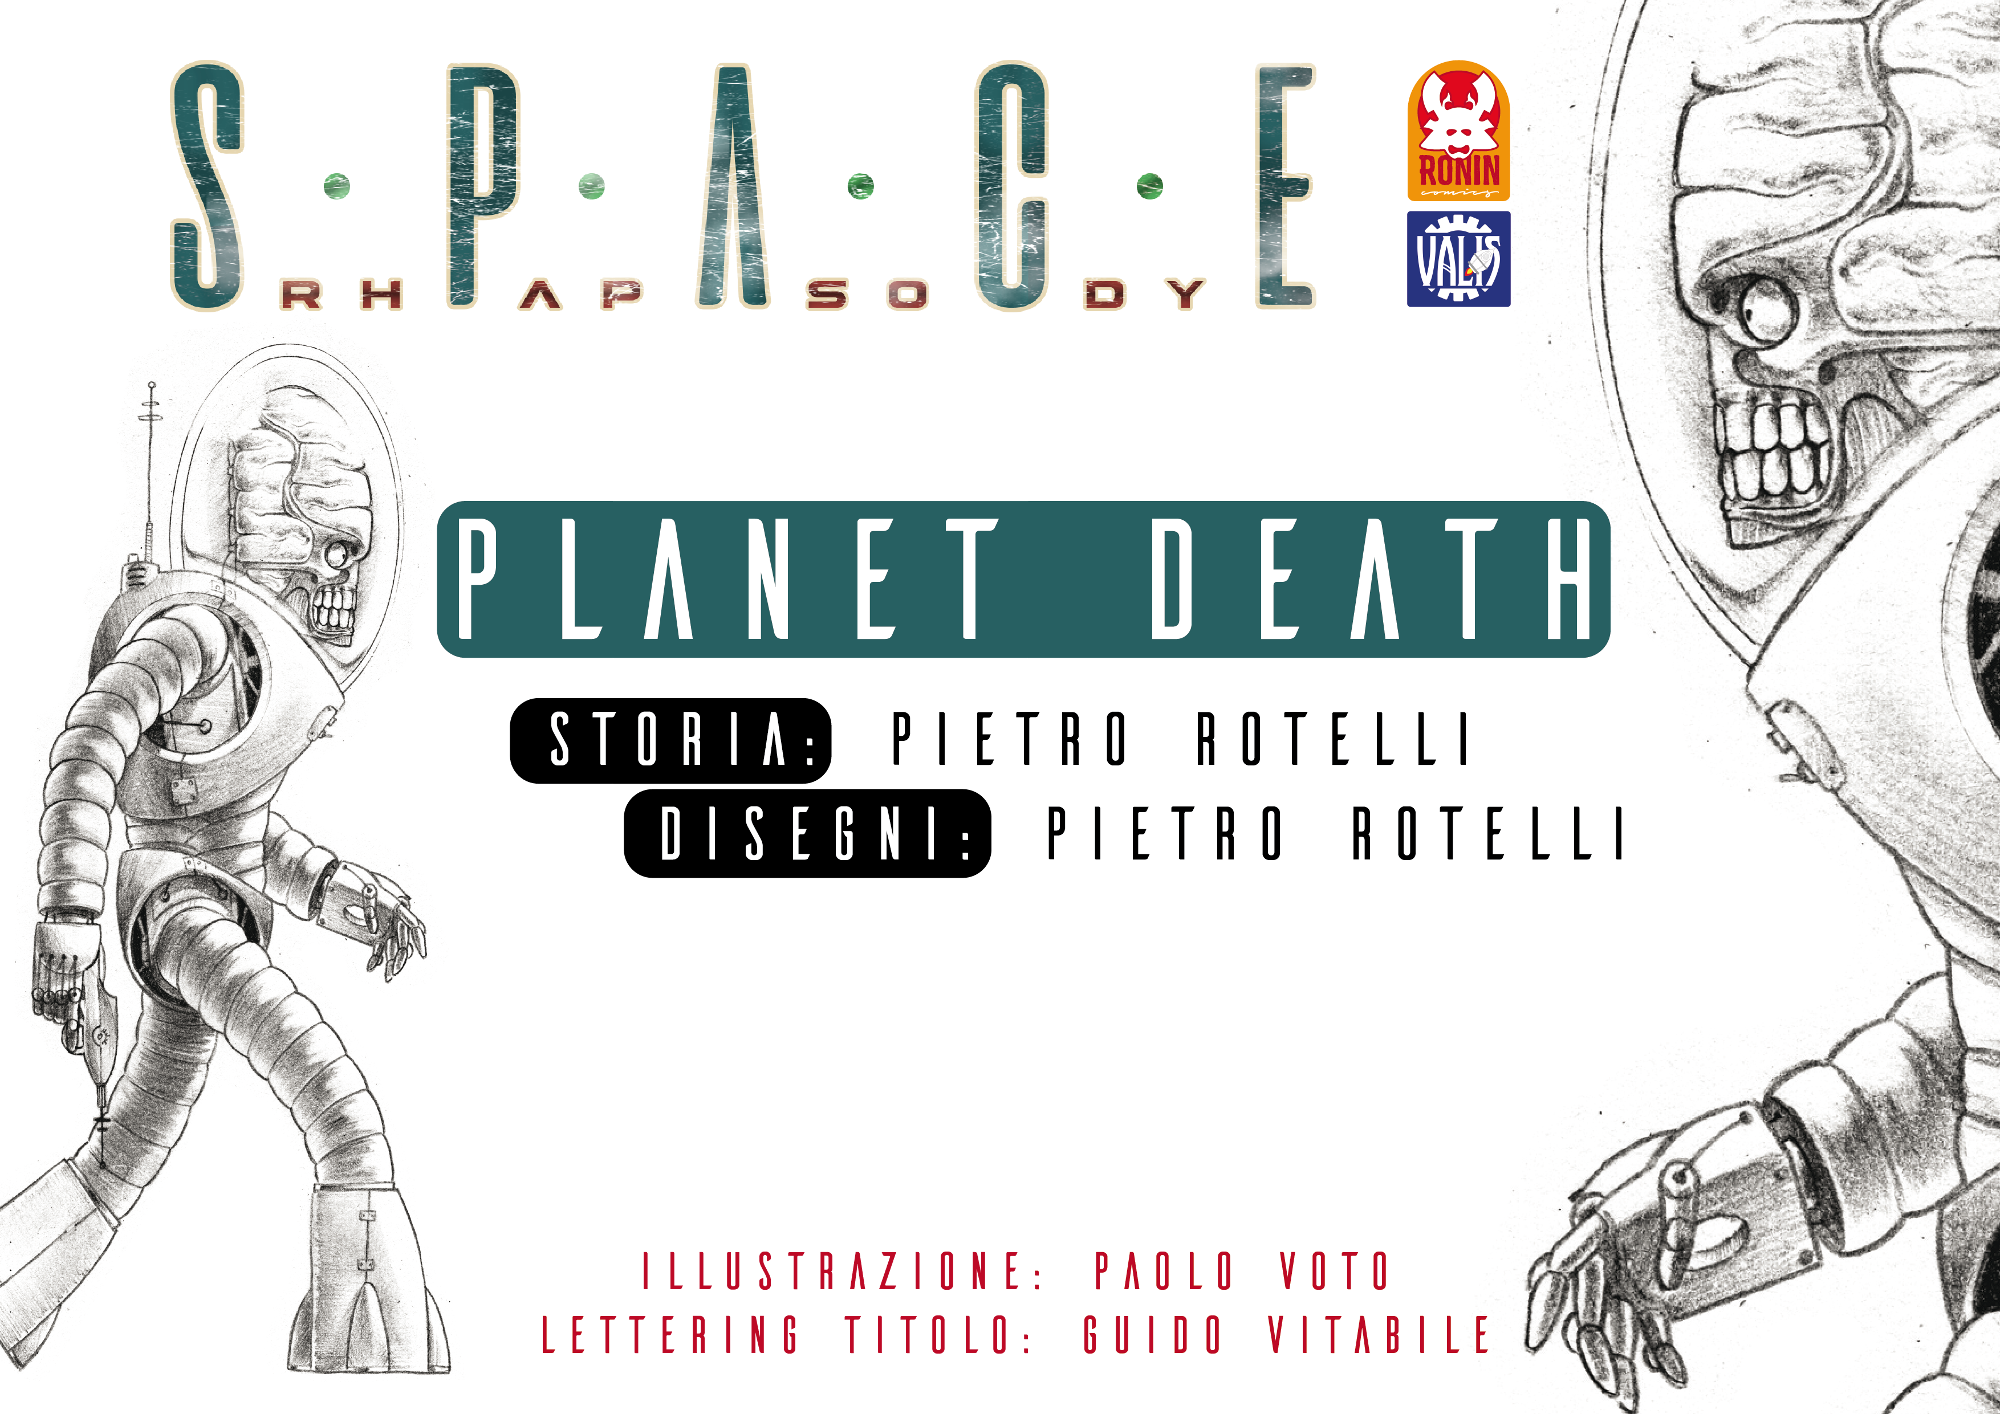 Space Rhapsody #4 - Planet Death 1 Iyezine.com